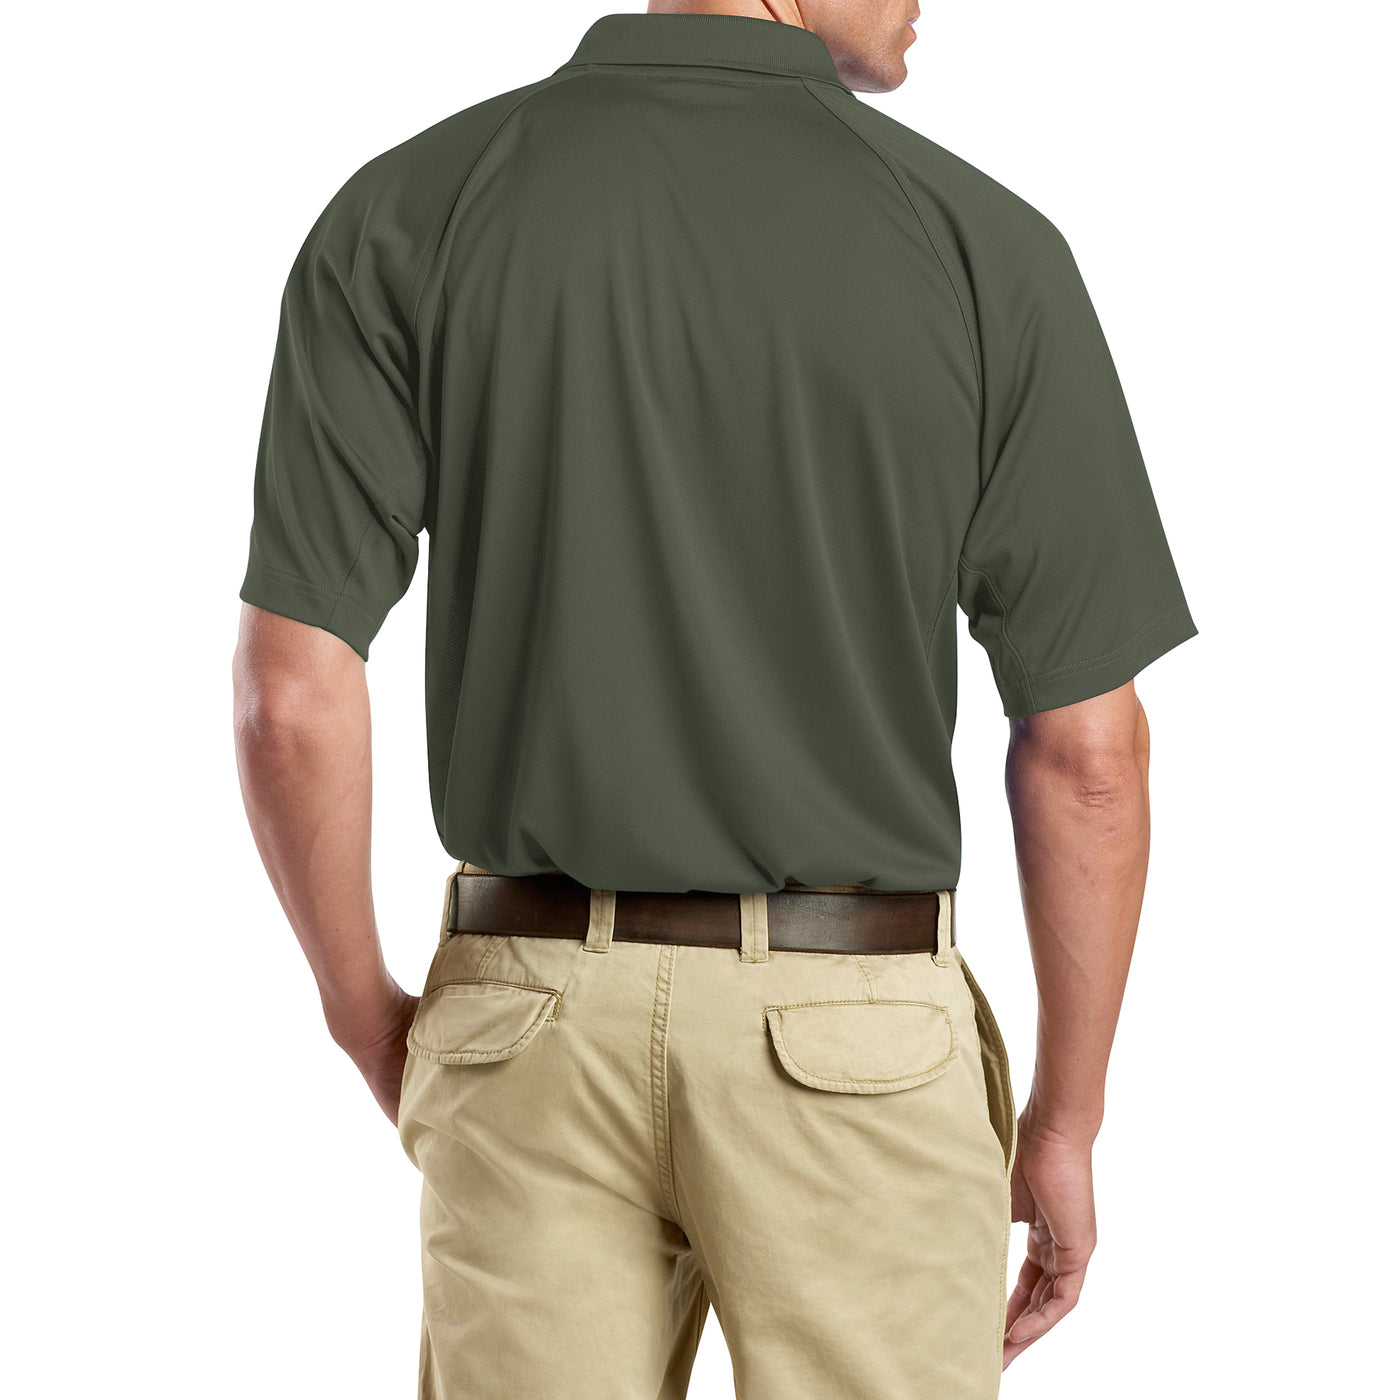 Men's Snag-Proof Tactical Polo Shirt - Tactical Green - Side